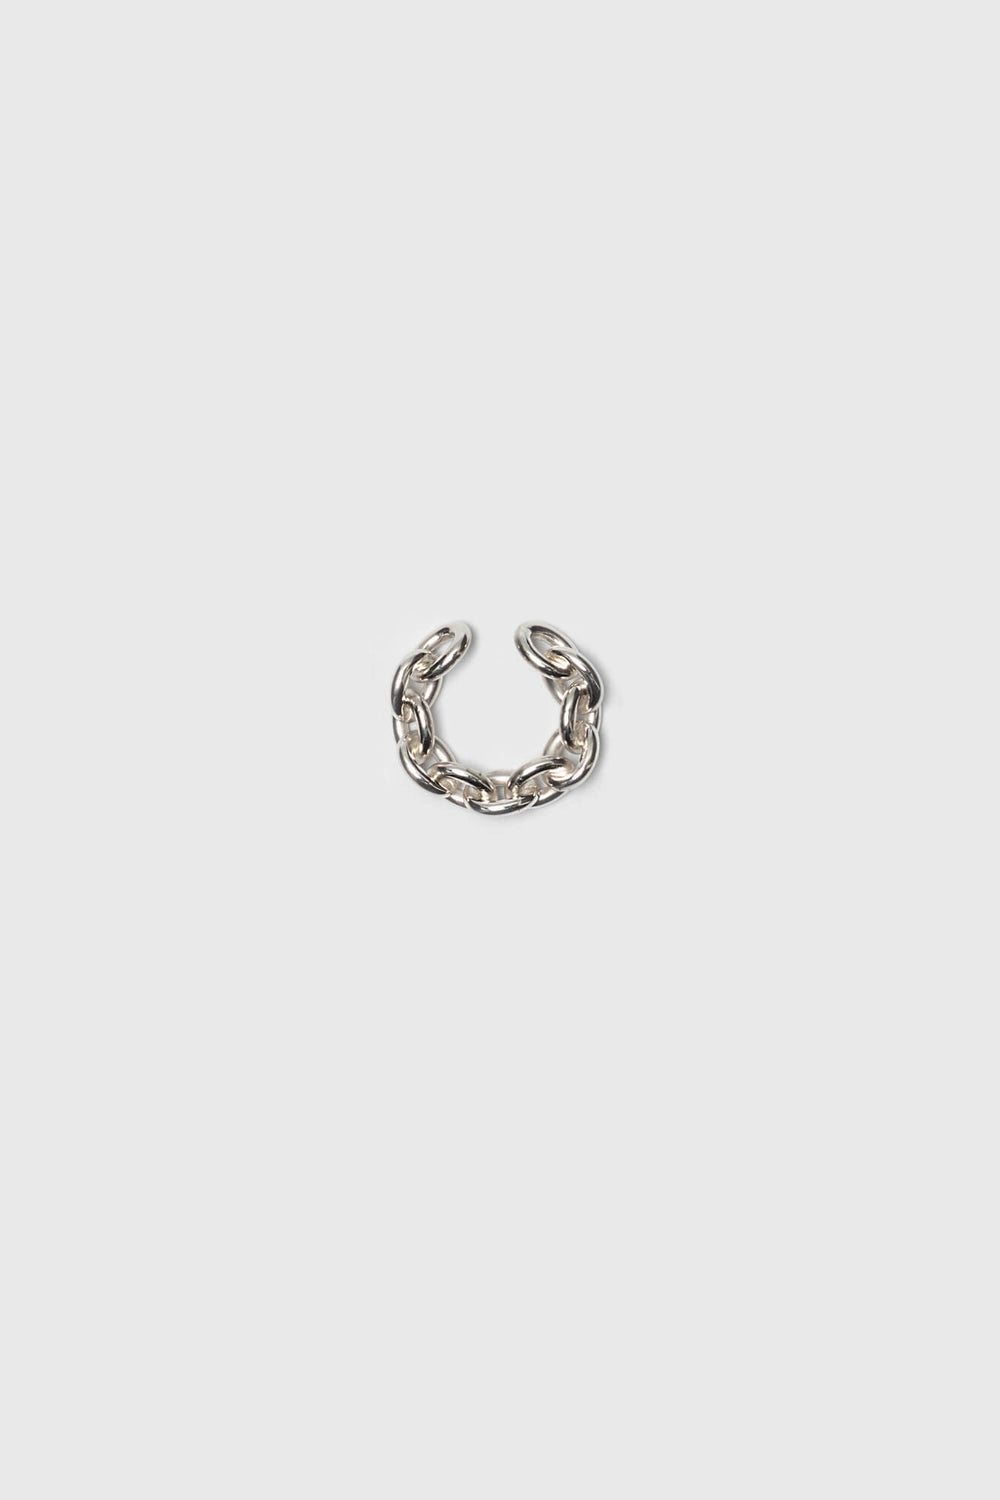 Polished link chain earcuff. Silver jewelry handmade in Berlin.